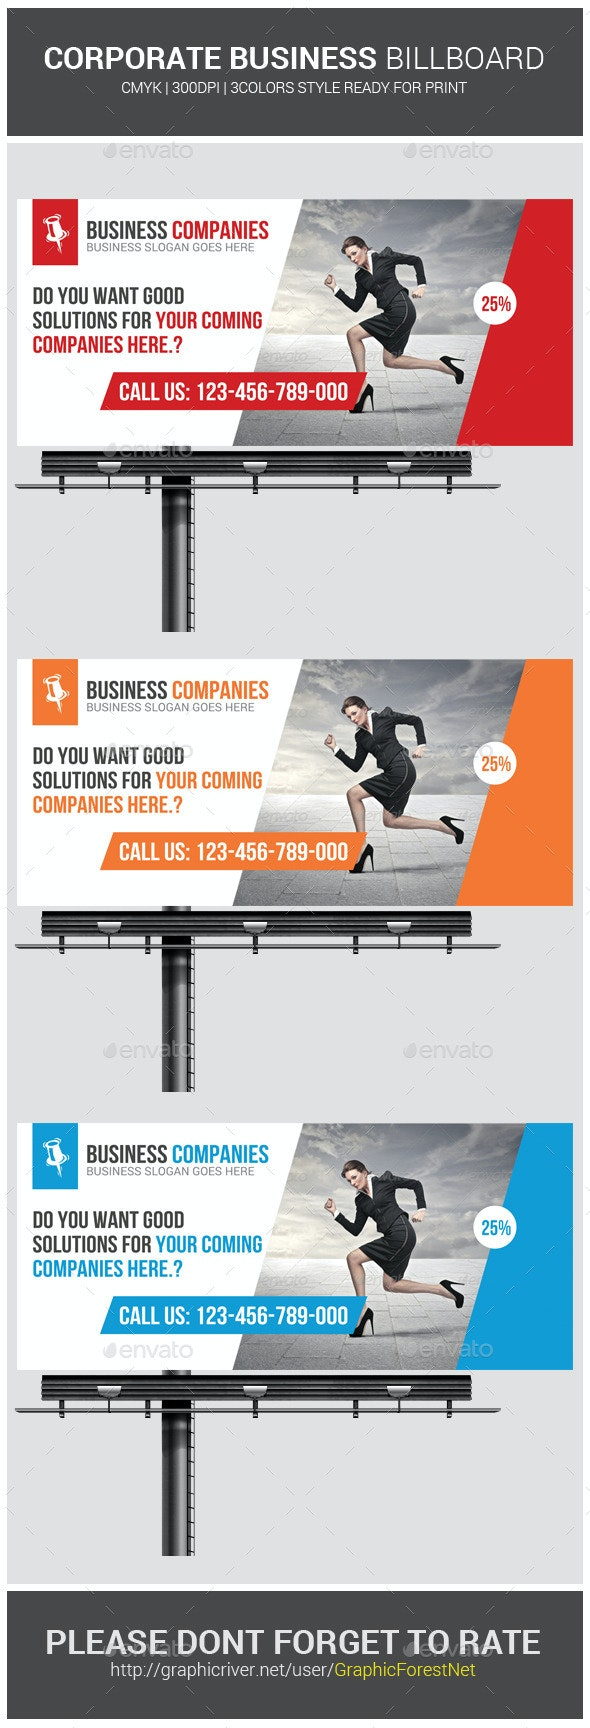 Corporate Business Billboard Banner Psd Template - Signage Print Templates